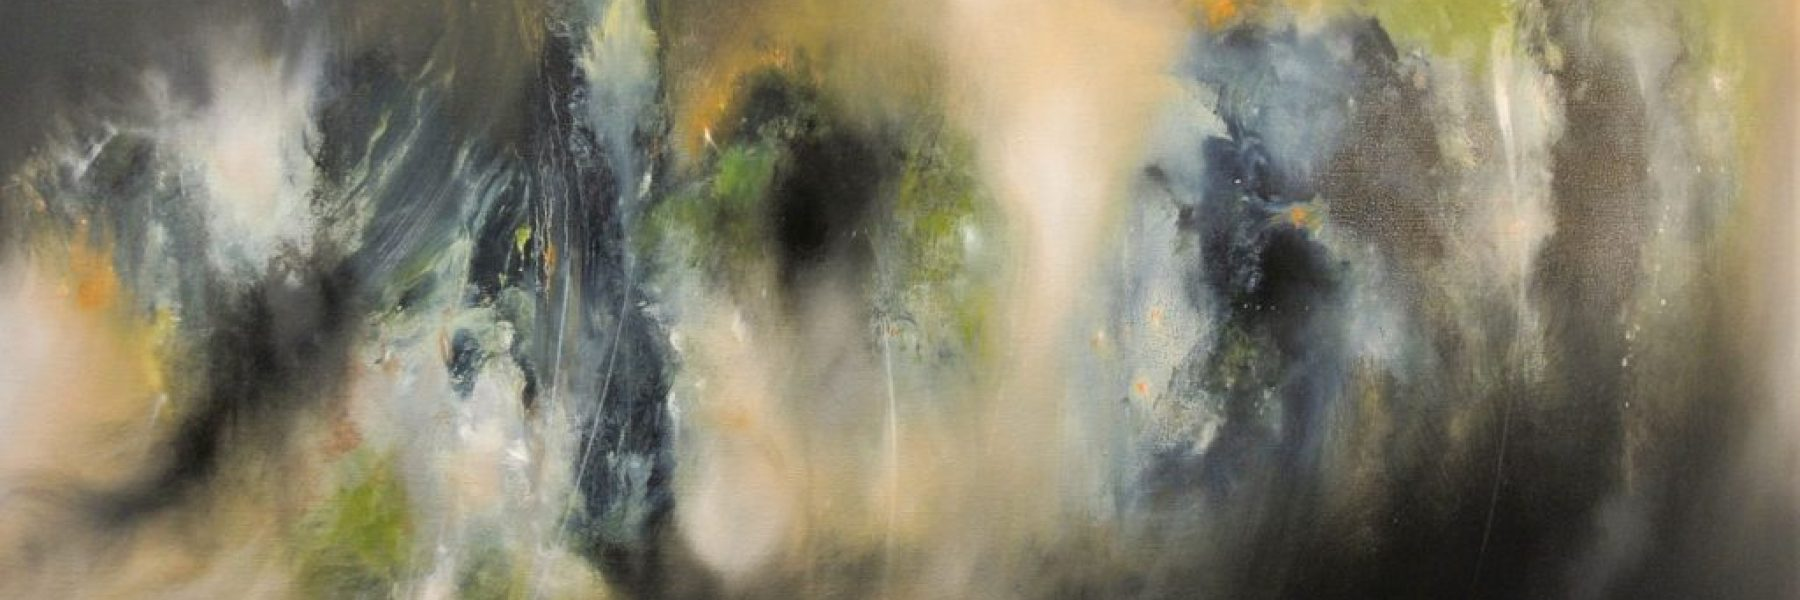 Sky-caves-50-x-120-cm-Oil-on-canvas-2020-Fernando-Velazquez